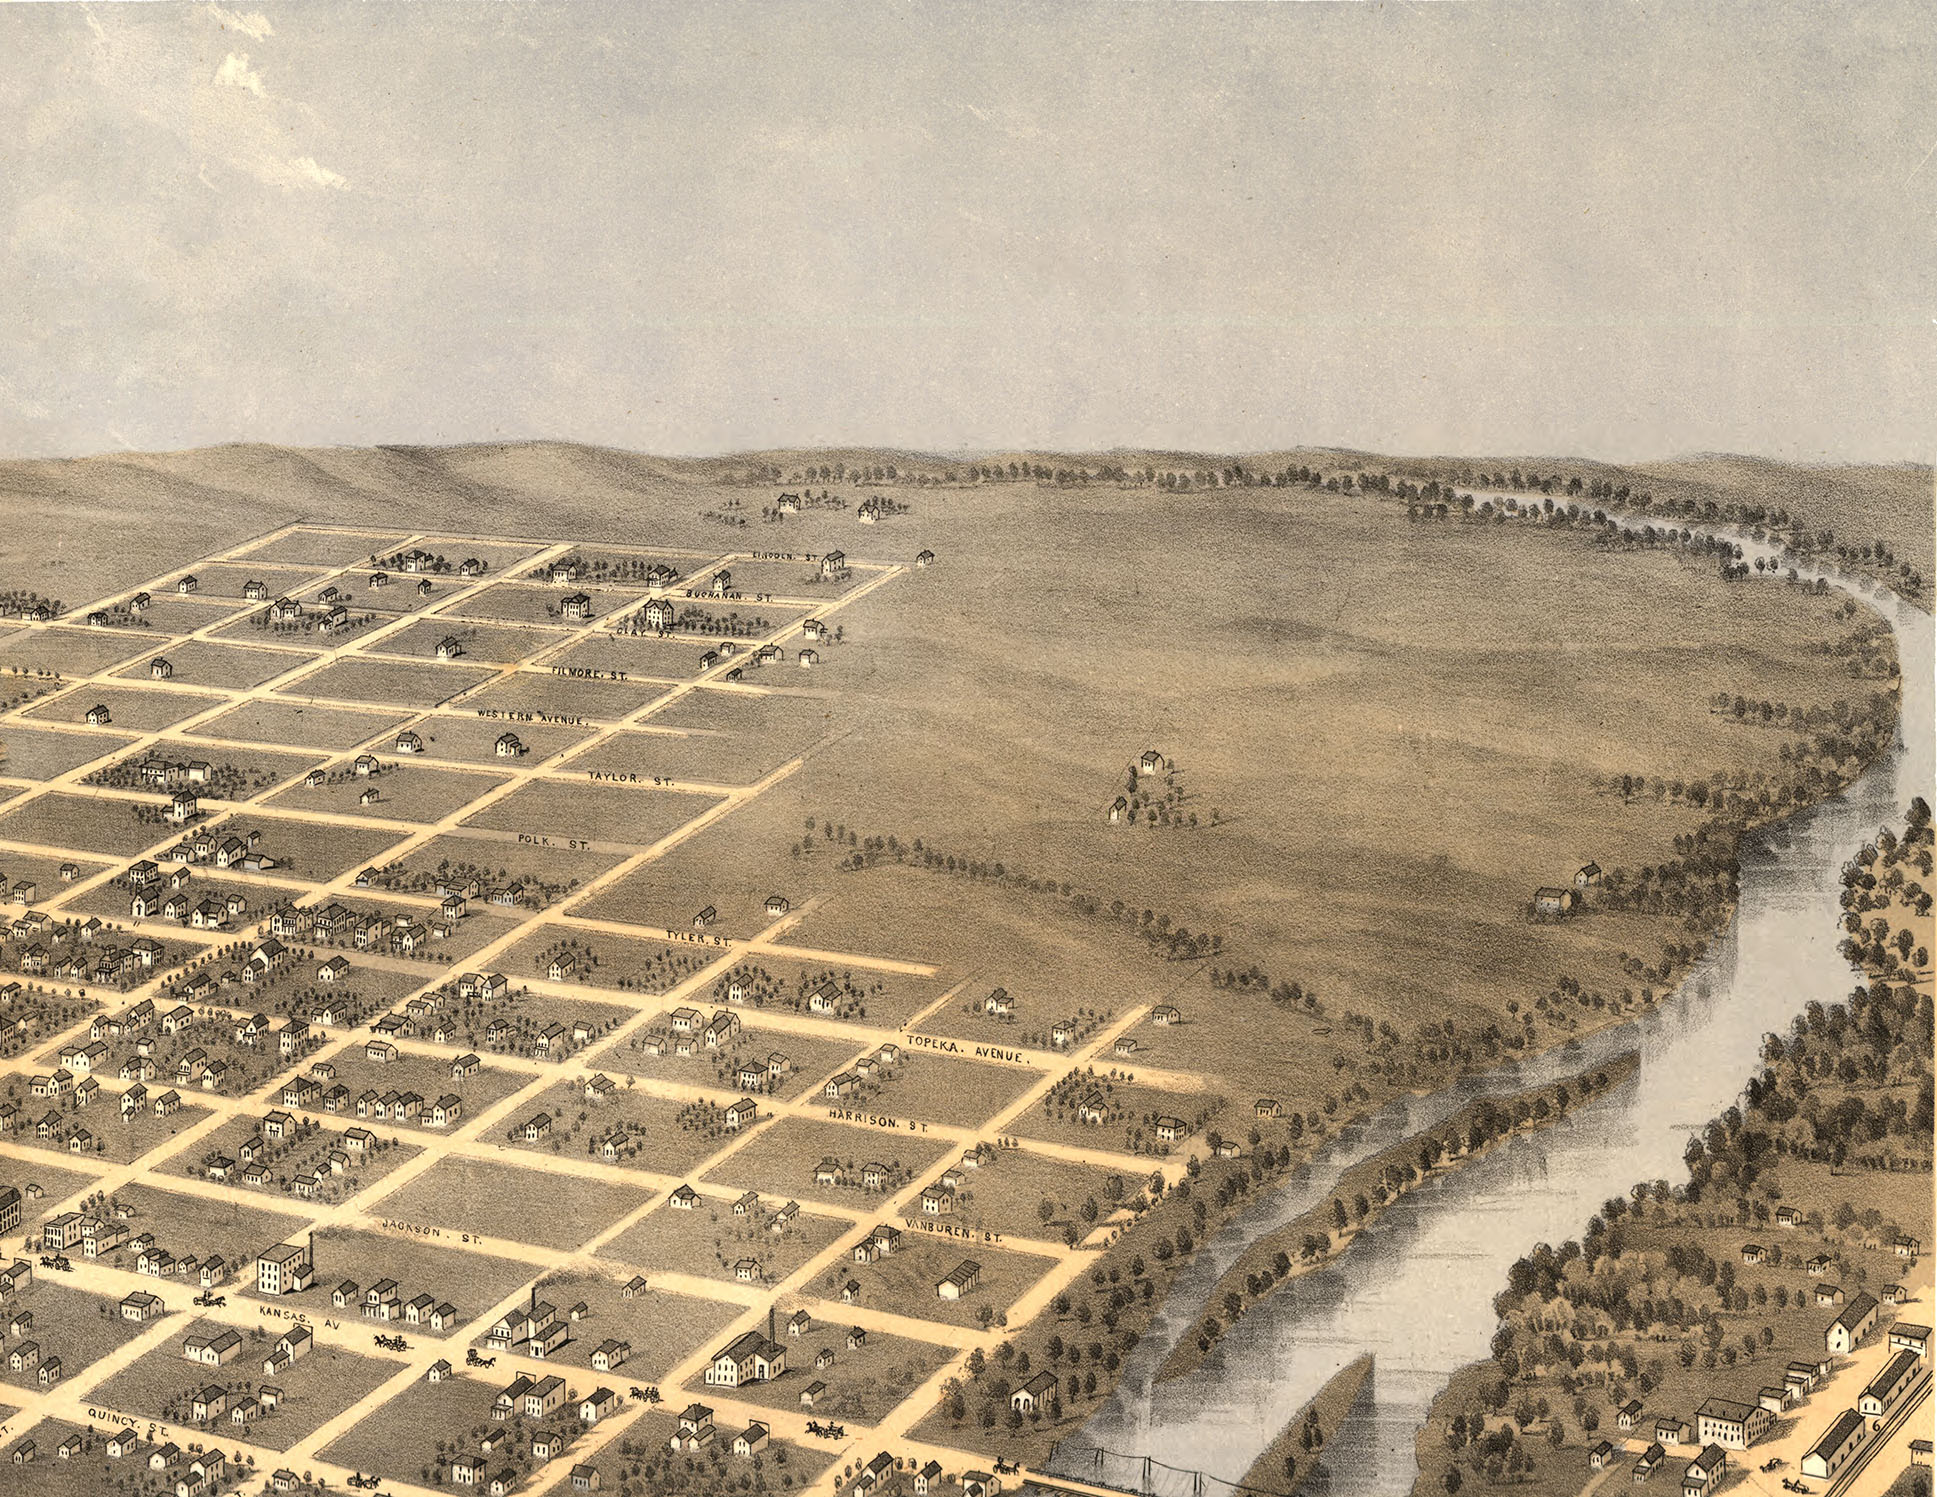 Antique topeka clipart banner library download Topeka, Kansas in 1869 - Bird\'s Eye View Map, Aerial Map, Panorama, Vintage  map, Antique map, Reproduction, Giclée, Framable map, Fine Art banner library download